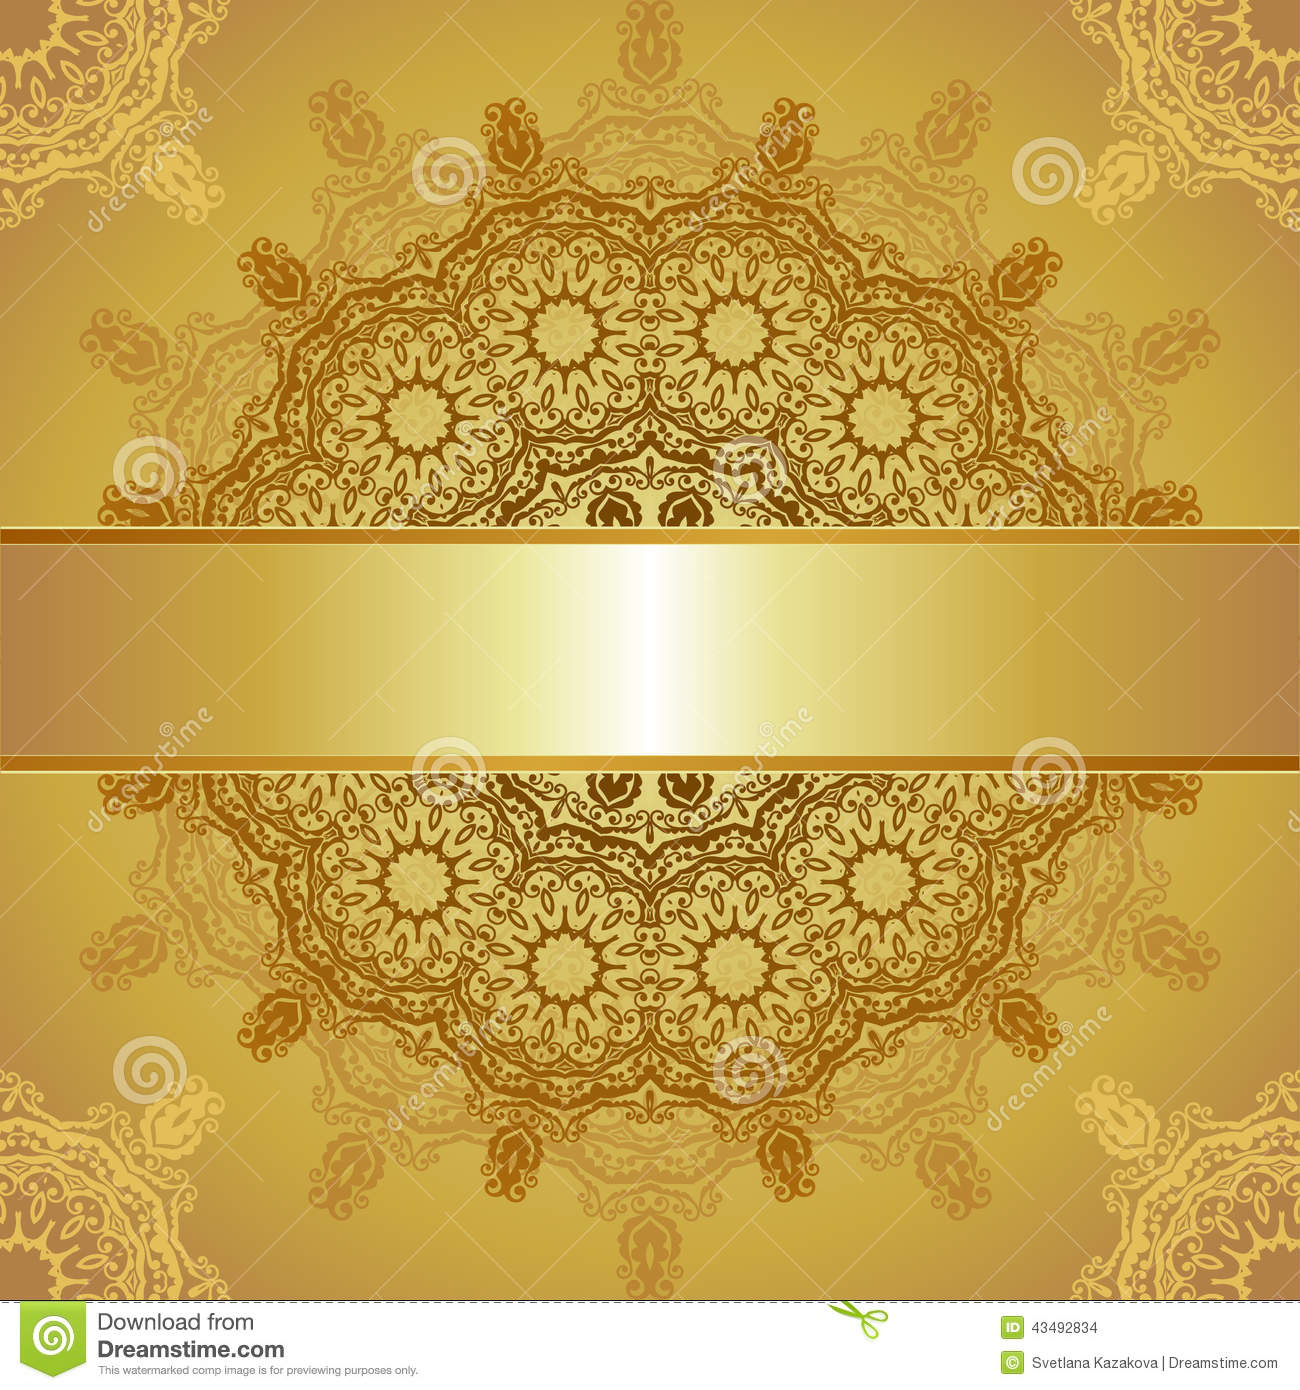 Gold Template For Greeting Card Stock Vector - Illustration of ...